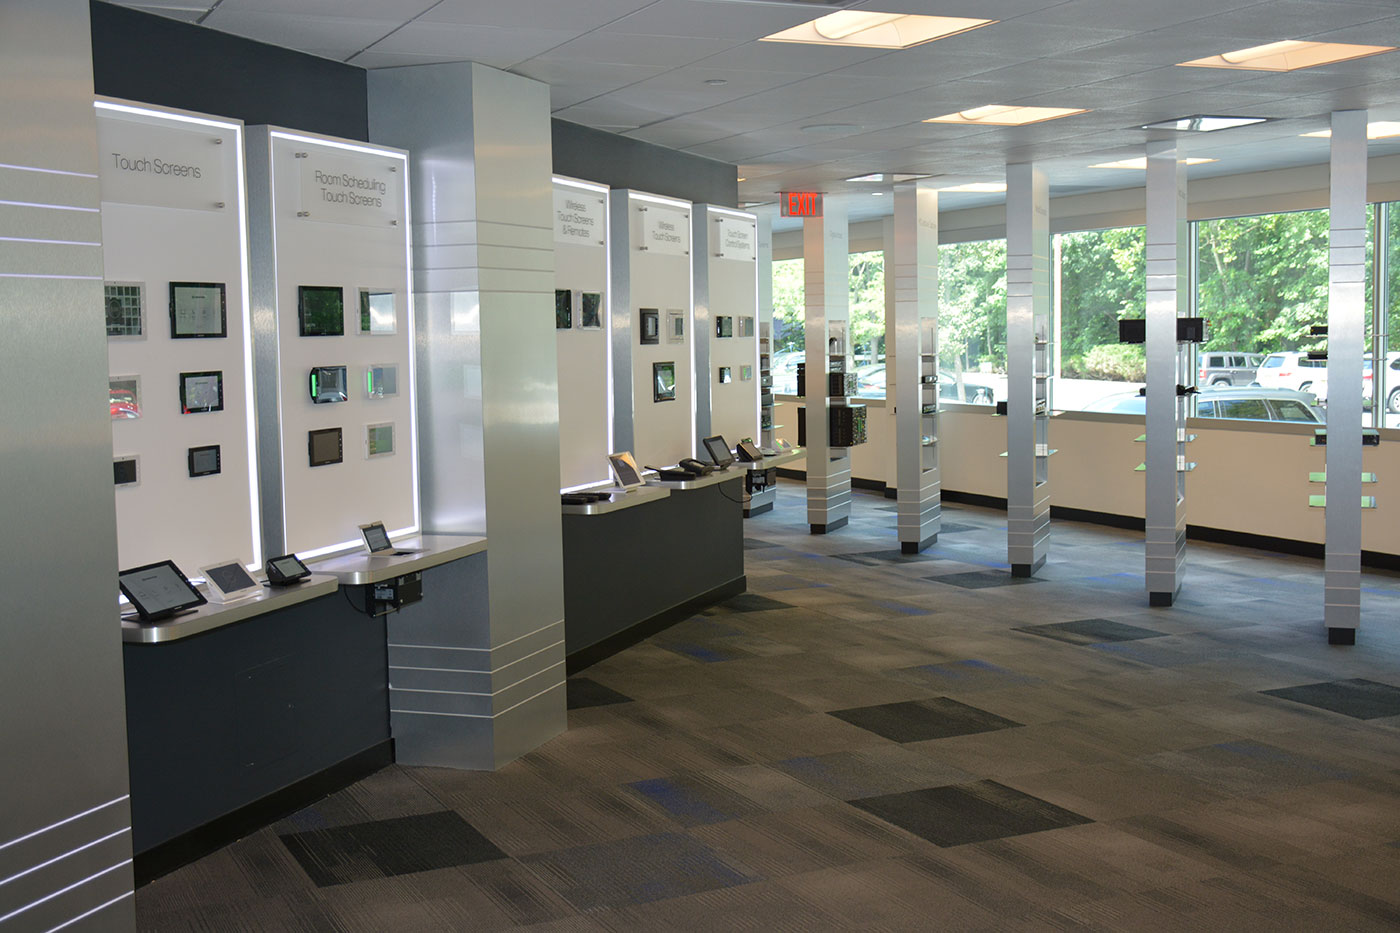 Touch Screen Display Walls